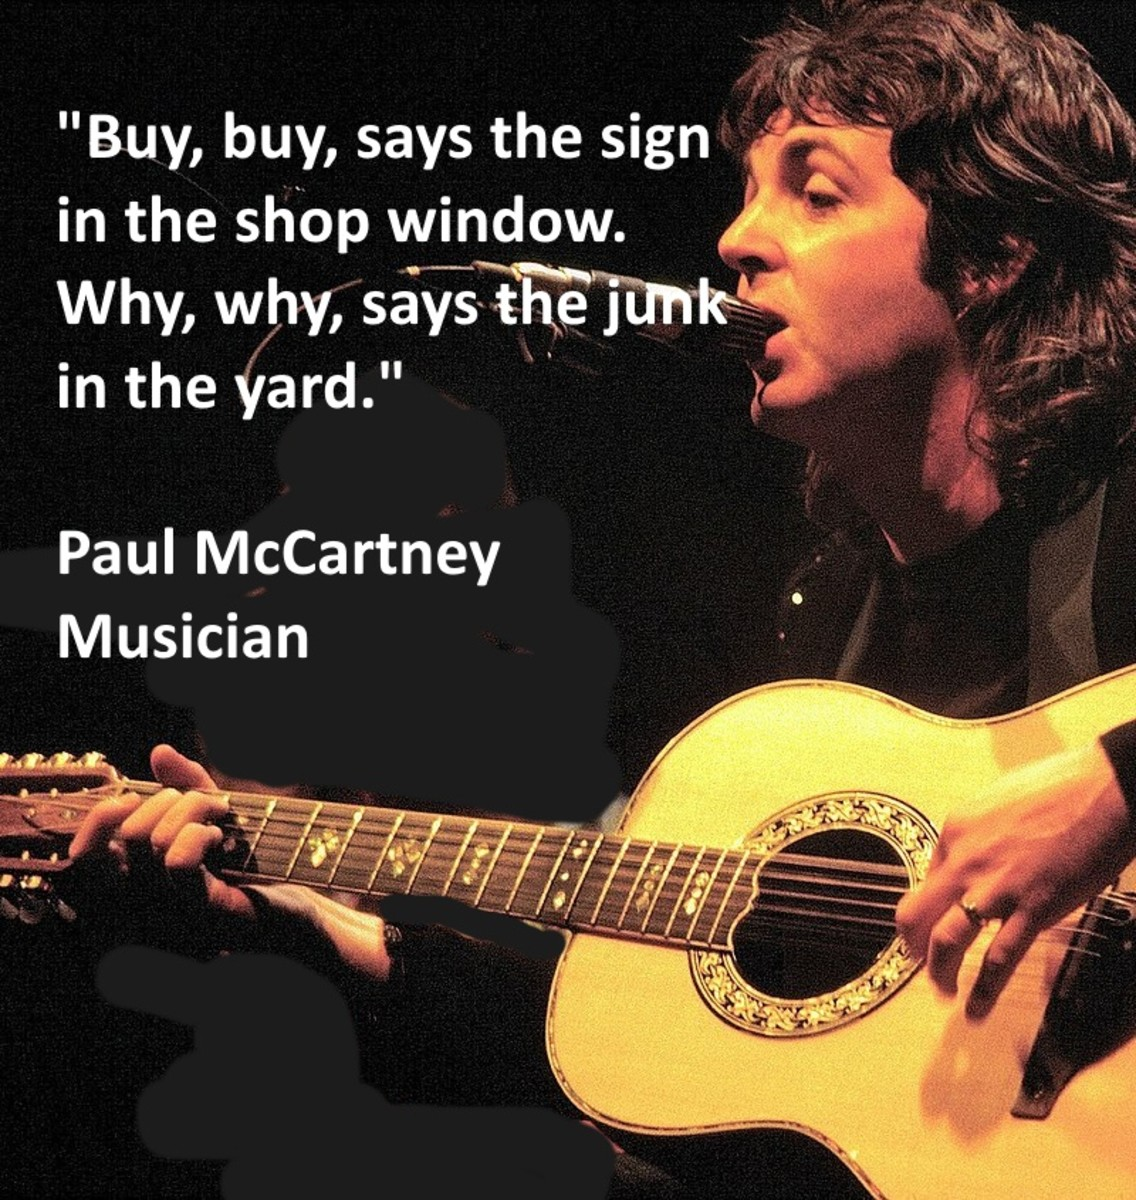 """Buy, buy, says the sign in the shop window. Why, why says the junk in the yard."" Paul McCartney - Musician"